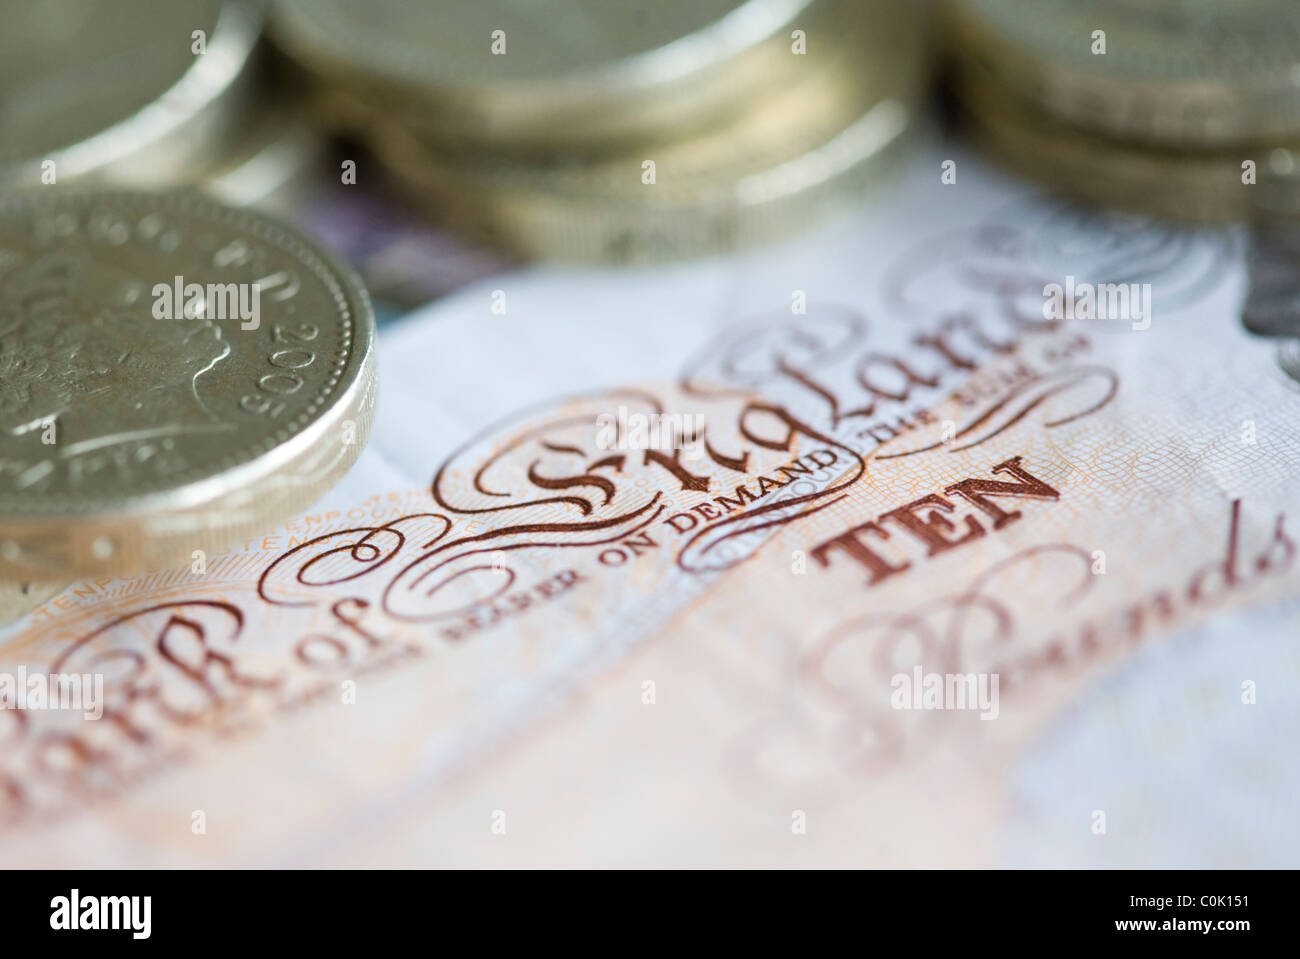 Ten pound sterling notes and one pound coins are set up for a photograph - Stock Image